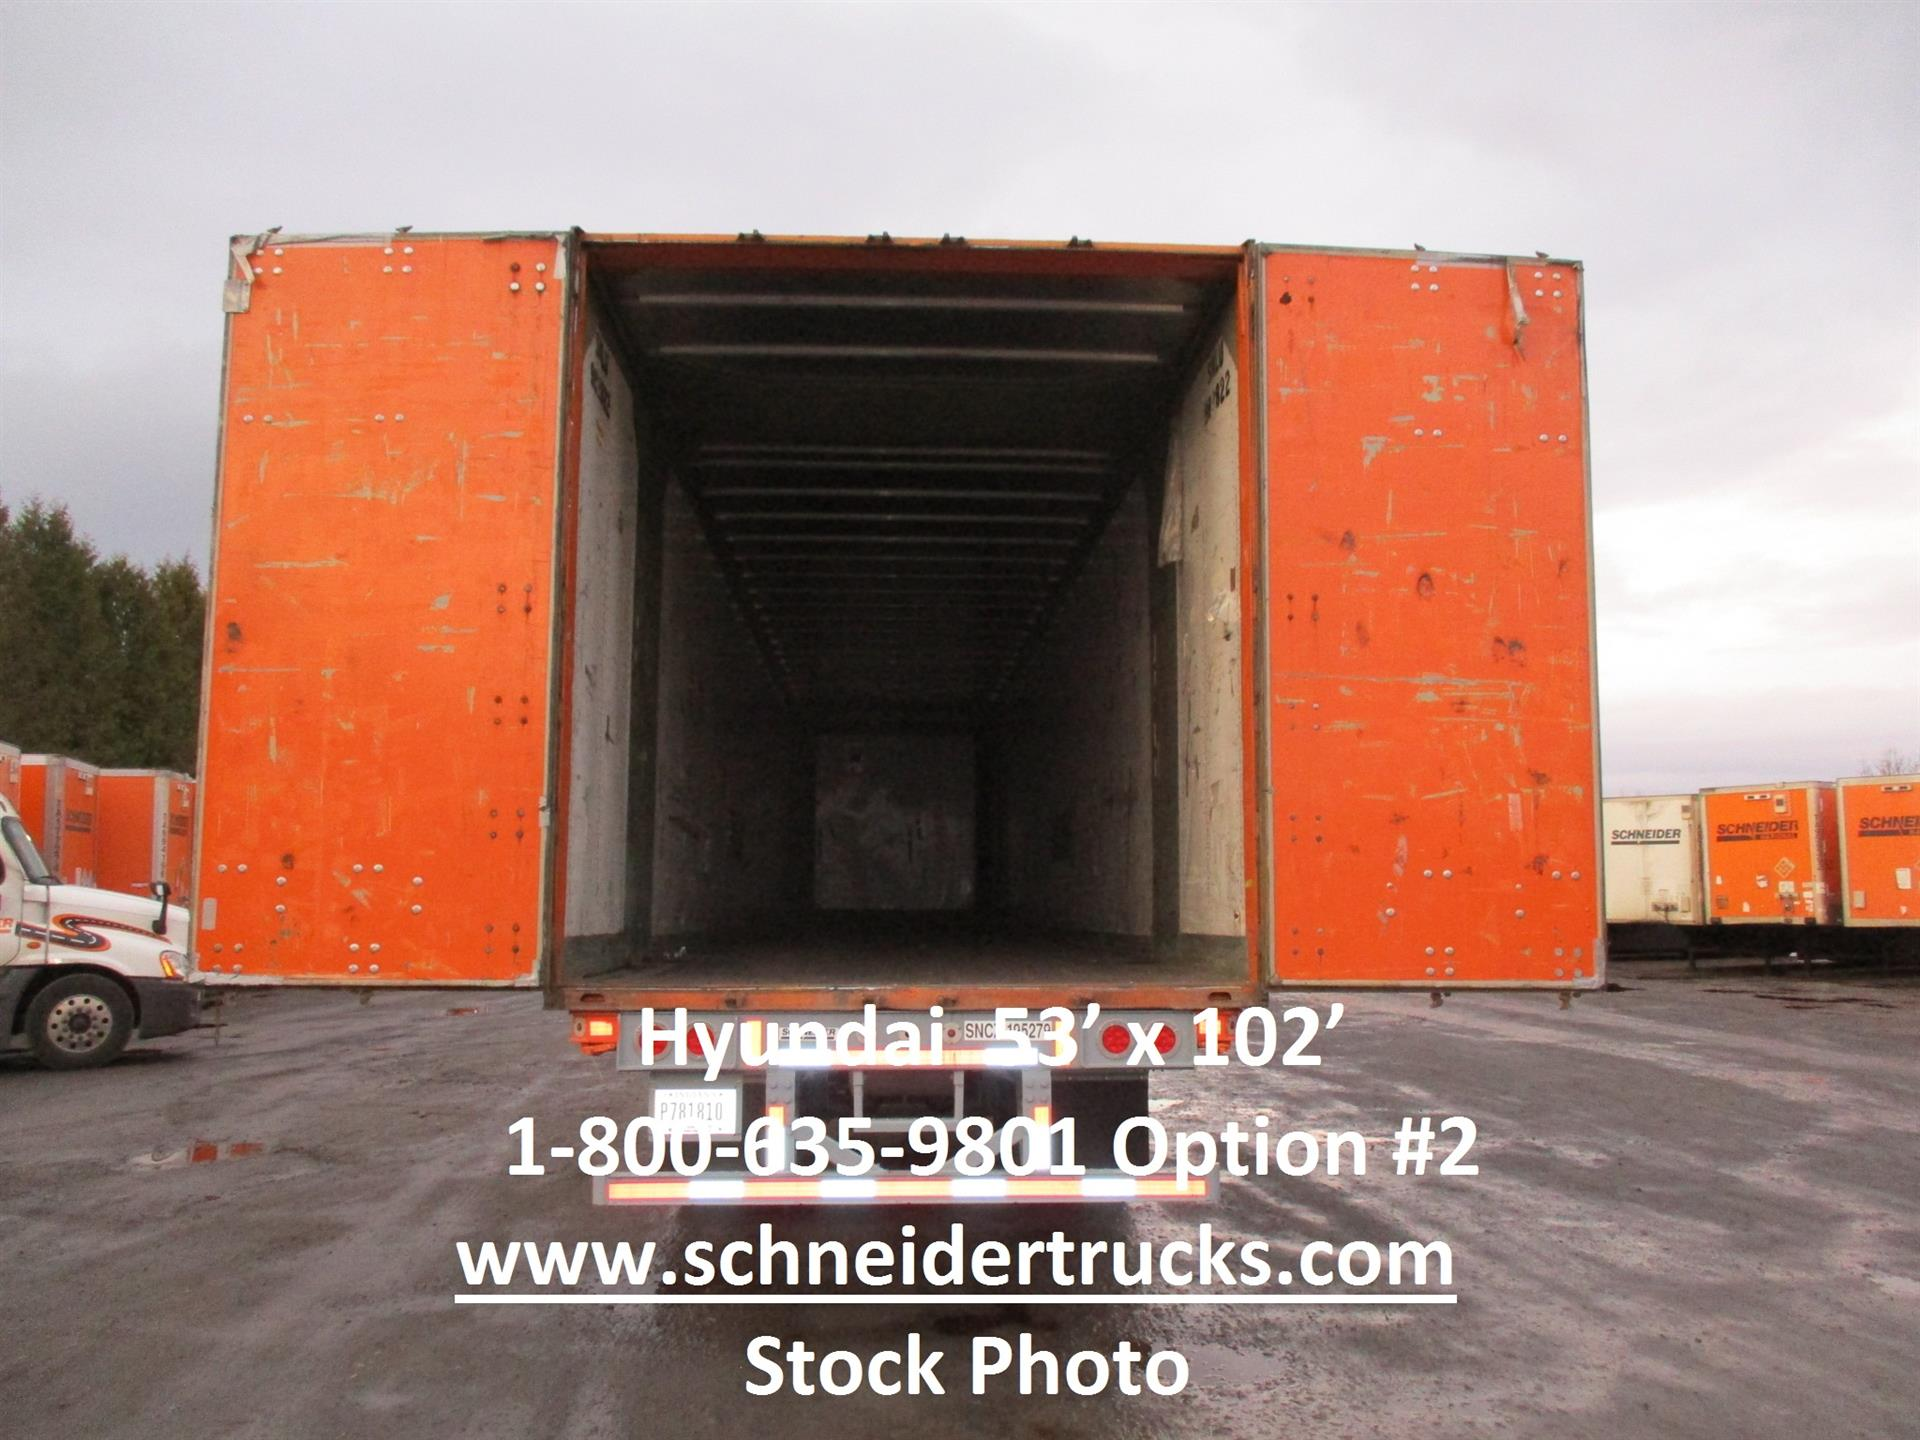 2006 Hyundai Container for sale-59151723